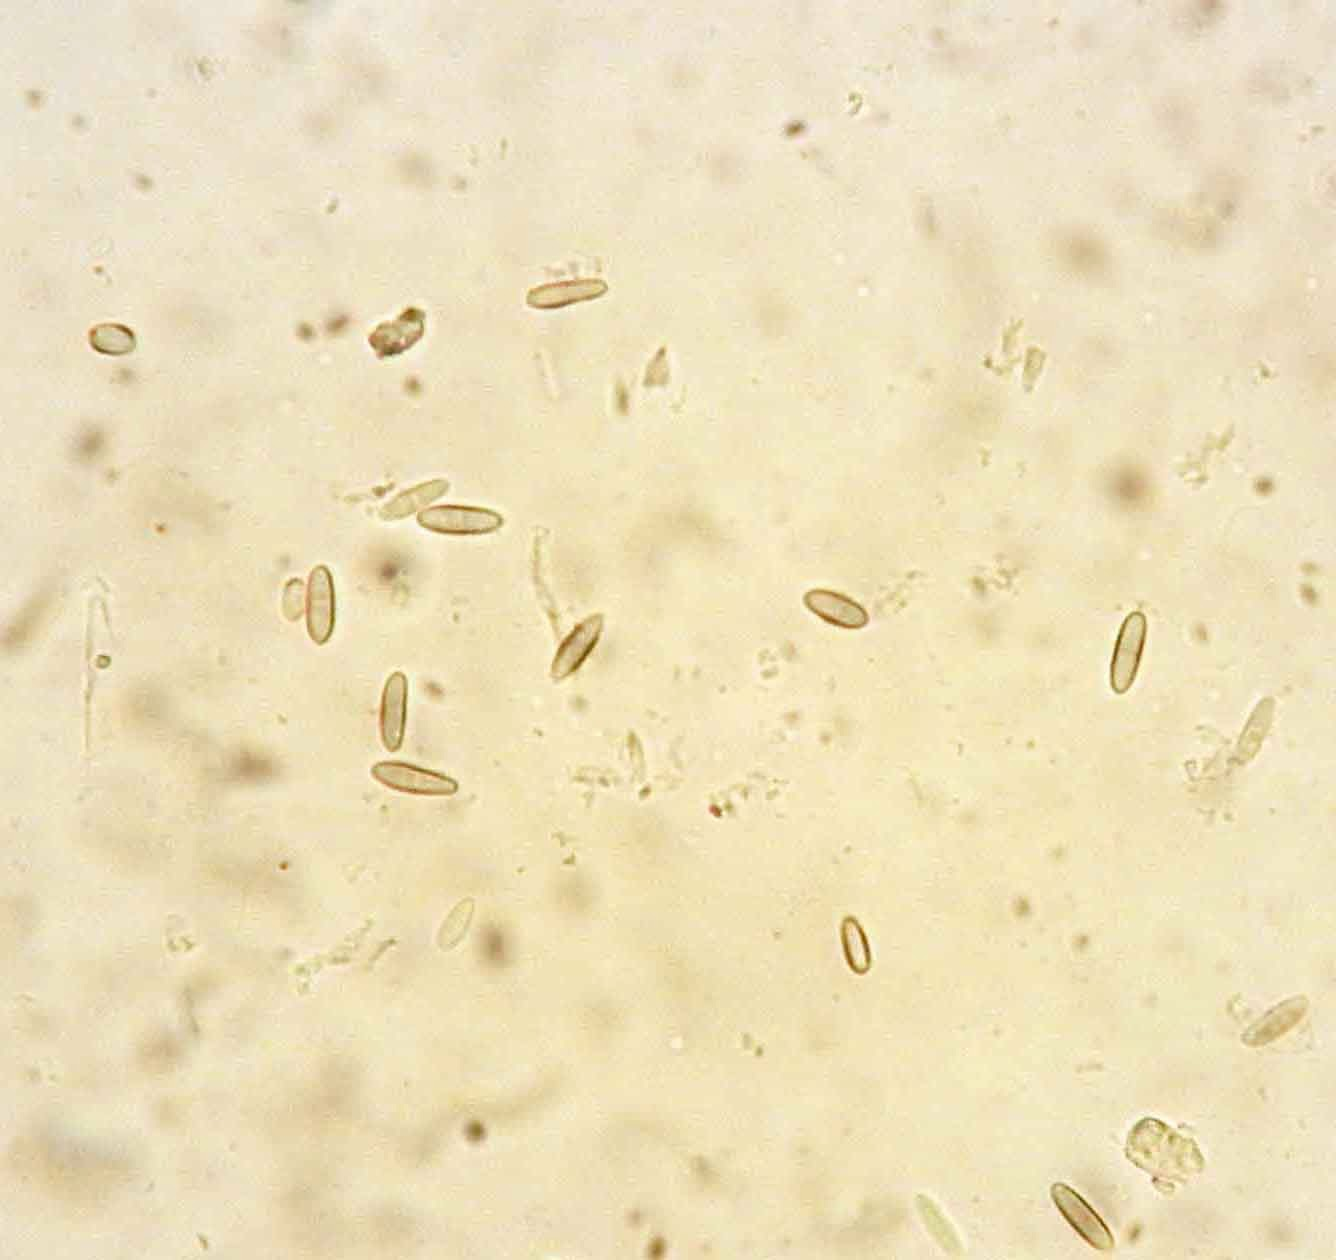 pale brown ellipsoid spores of Phaeocalicium polyporaeum